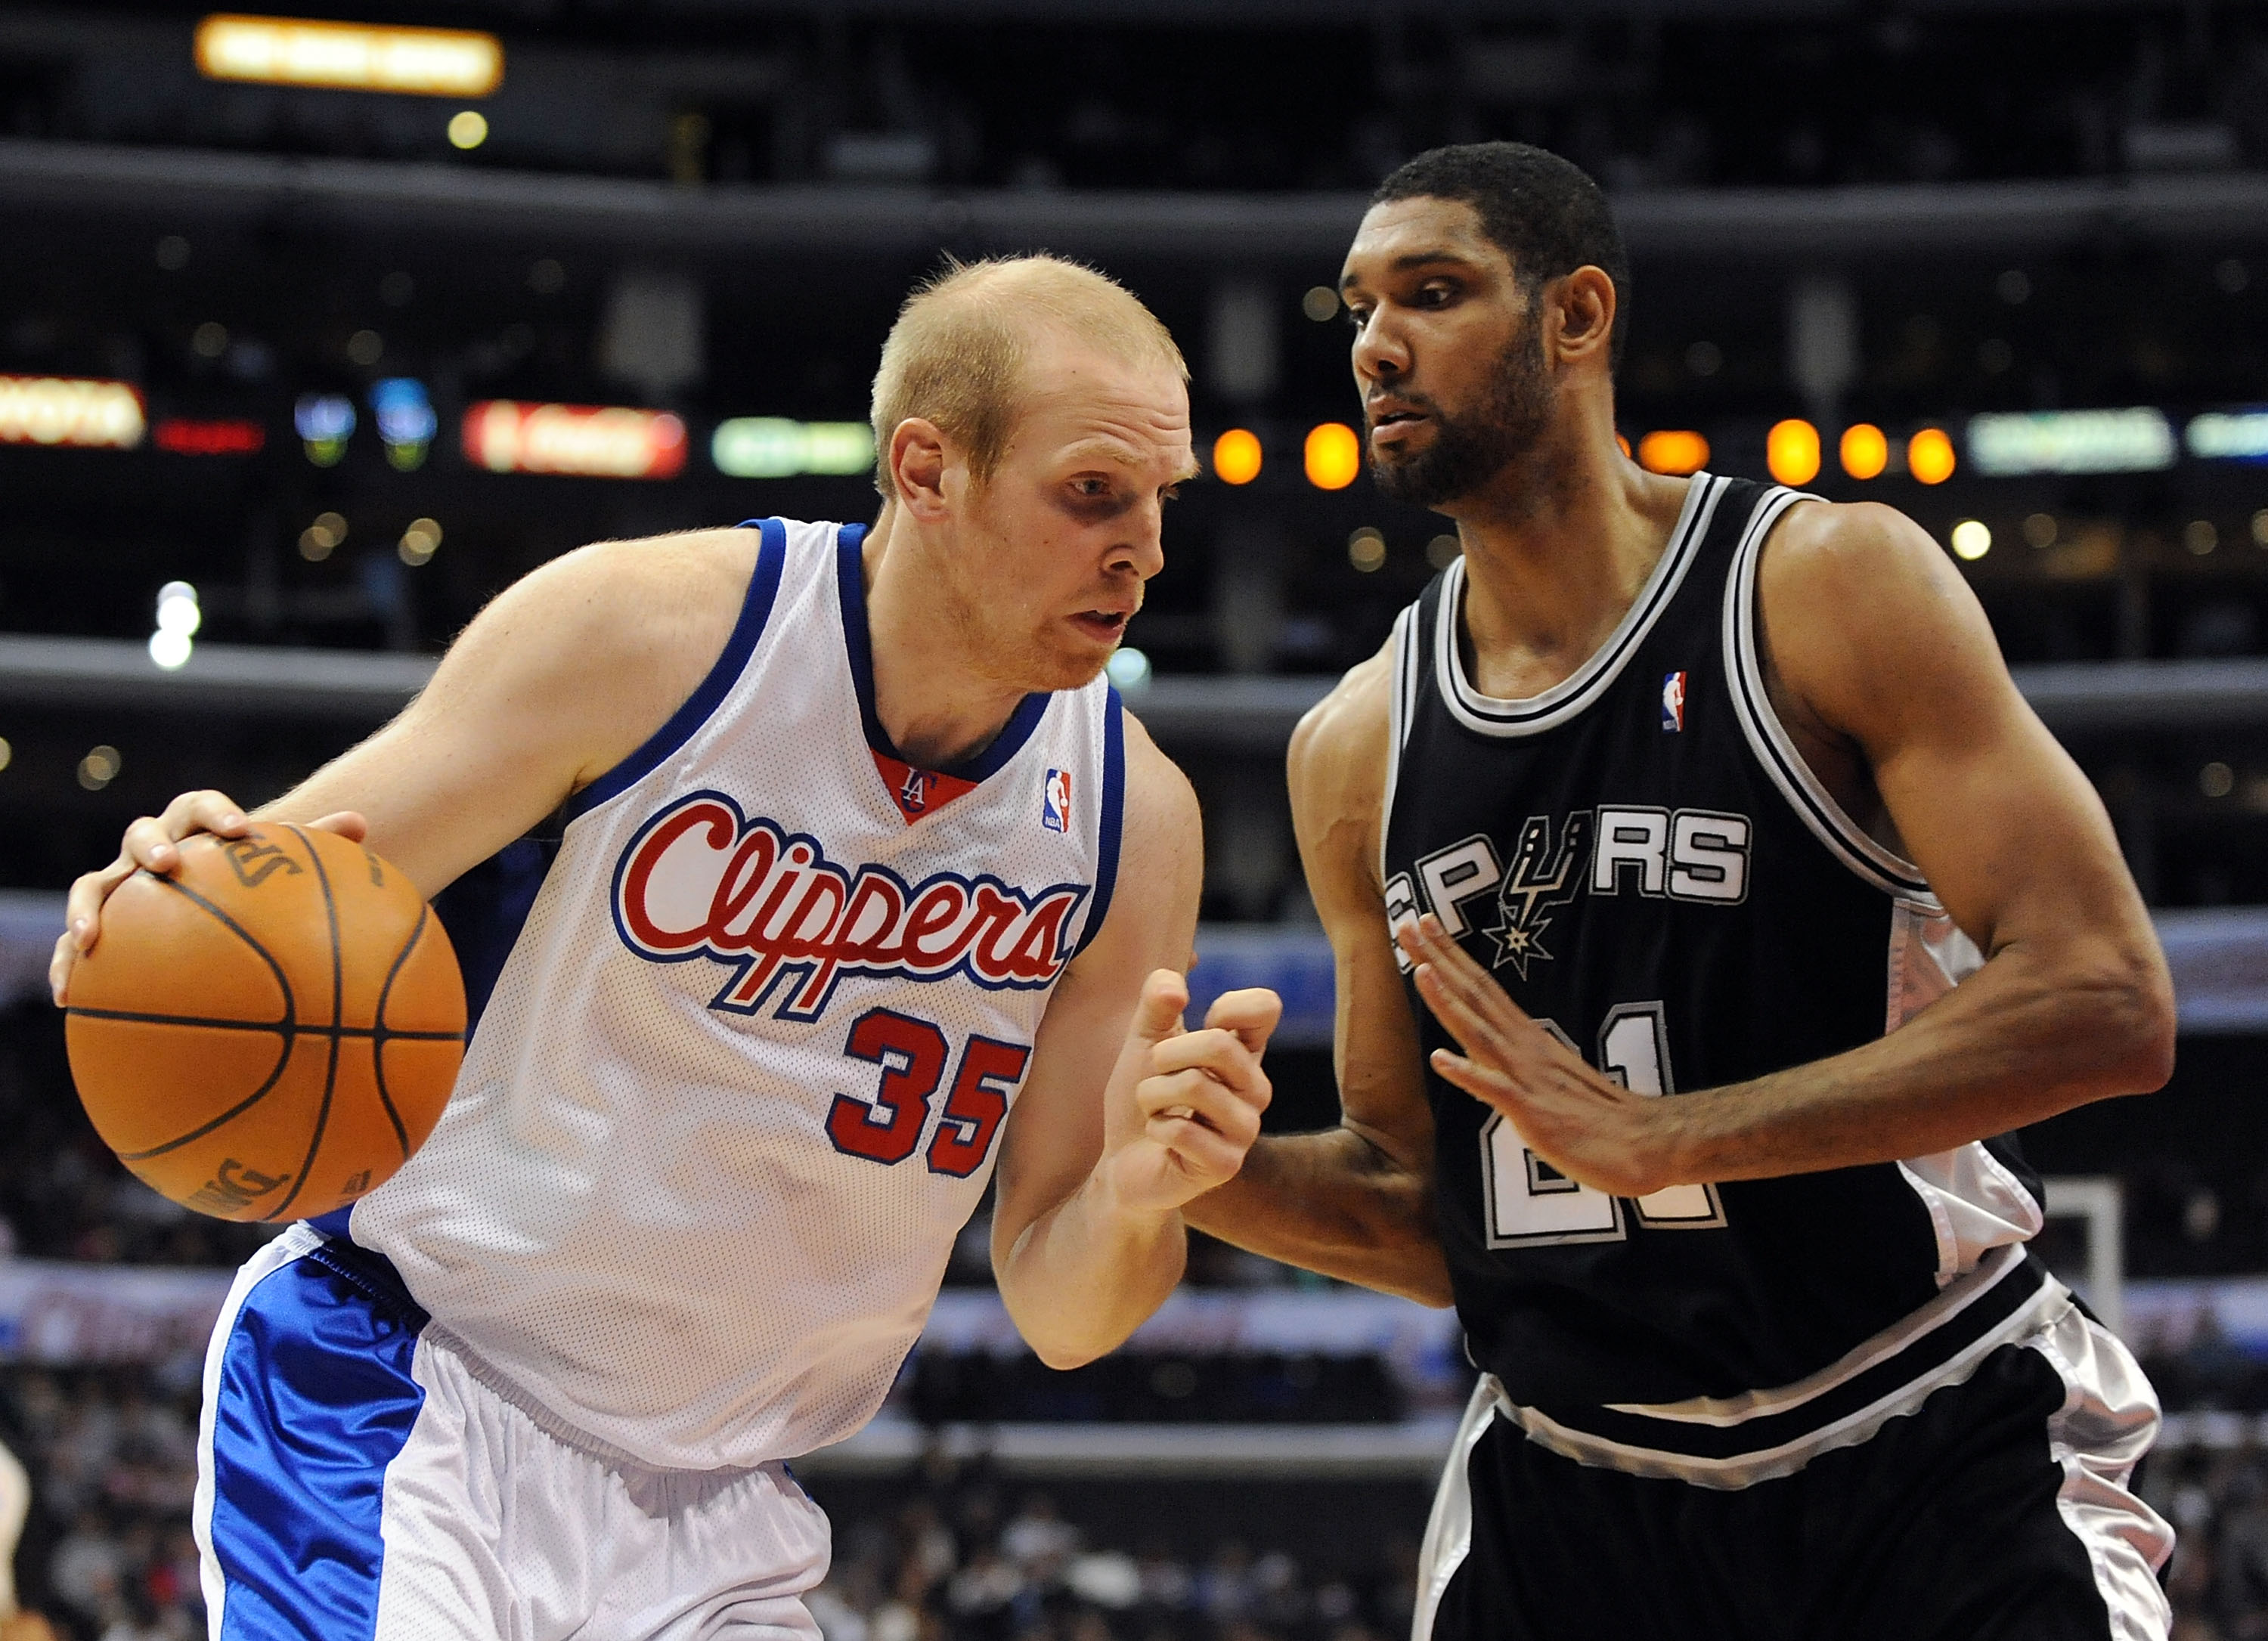 Chris Kaman is currently auditioning for a new team.